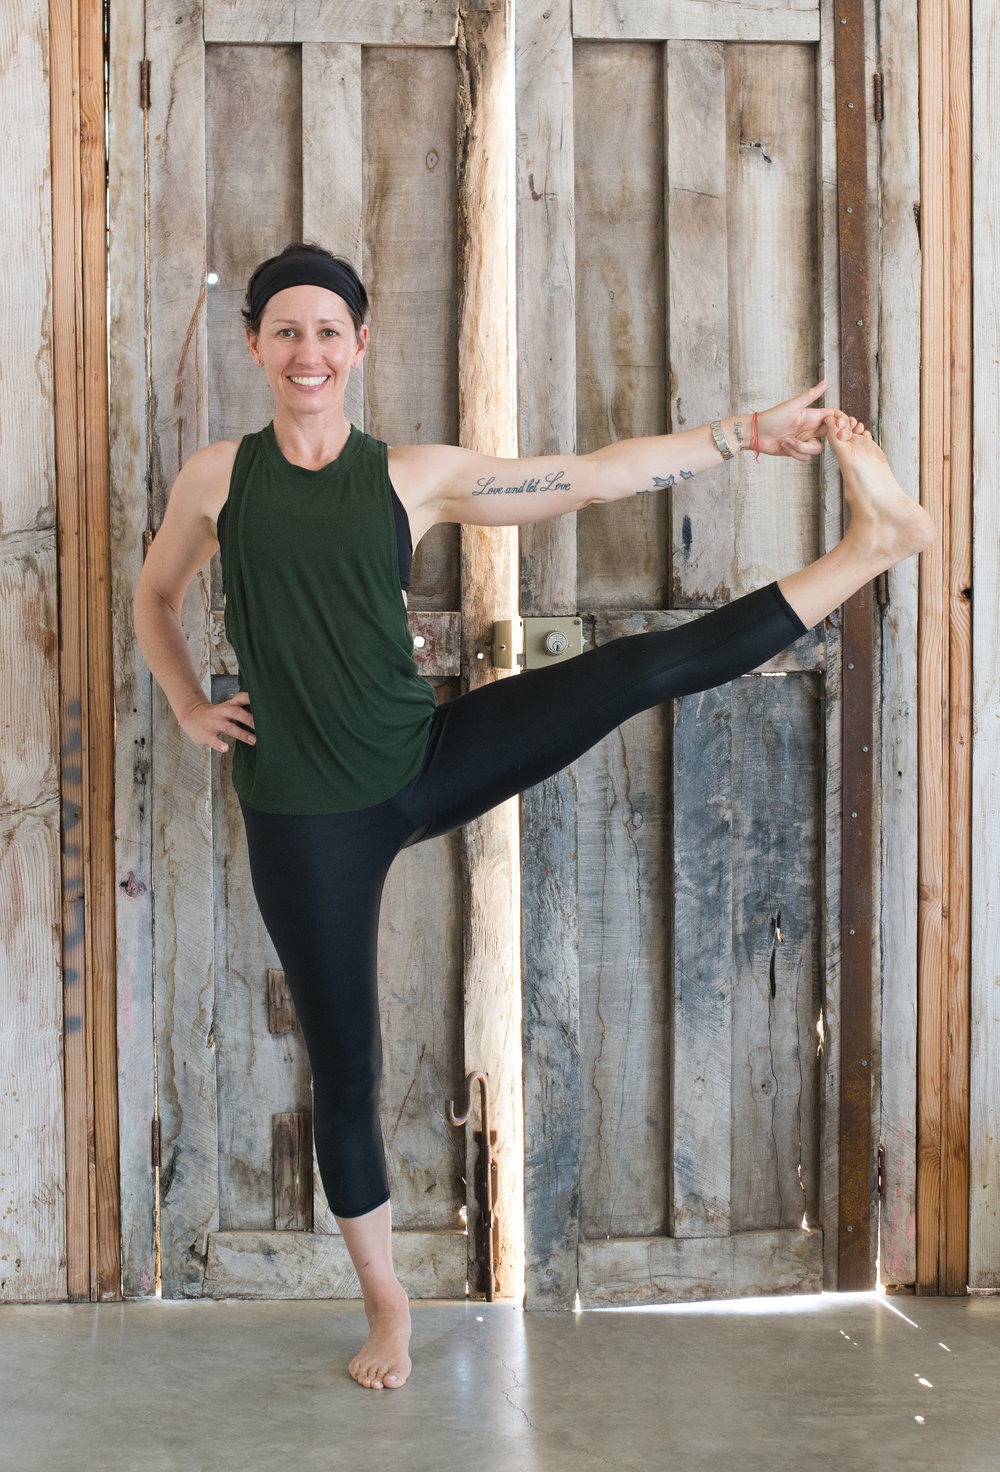 About Sara-Mai: - With several past lives in the fitness industry as an athlete, coach, administrator and entrepreneur, it's no surprise that it's the physicality of the power practice that first attracted Sara-Mai to yoga. Years later, it's the spiritual limbs of yoga that keep her hooked, and she strives to offer the full spectrum of the practice to her students. Sara-Mai's classes are informed by her athleticism and her advanced studies in mindfulness and Tibetan Buddhism. Her teaching will encourage you to seek challenge where you need it that day, be it via movement or stillness. A 200-hour Yoga Alliance certified instructor, Sara-Mai has completed several hours of continuing education in meditation, Buddhist studies and Yogic philosophy.Sara-Mai completed a Masters Degree in Sport Management at the University of San Francisco in 2004 and is a 1999 graduate of Tufts University. Off the mat, she can be found adventuring between her homes in the Texas Hill Country, and Southern Baja with her husband and two dogs, Sport and Bug.Sara-Mai is a yoga & meditation instructor with Baja Surf Yoga and will be co-teaching both January 2019 retreats.